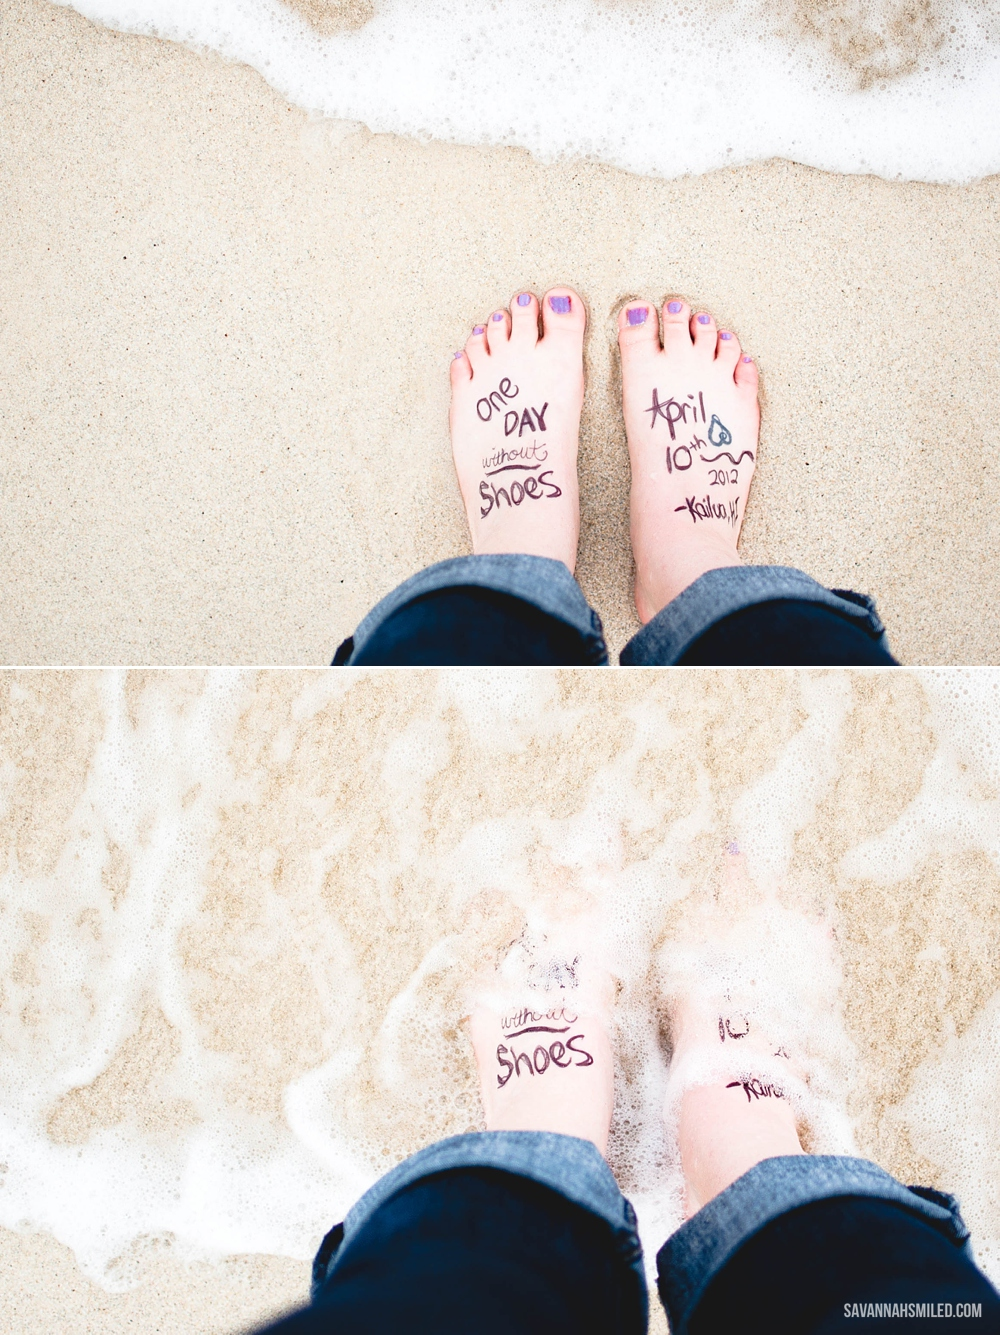 one-day-without-shoes-kailua-hawaii-2.jpg